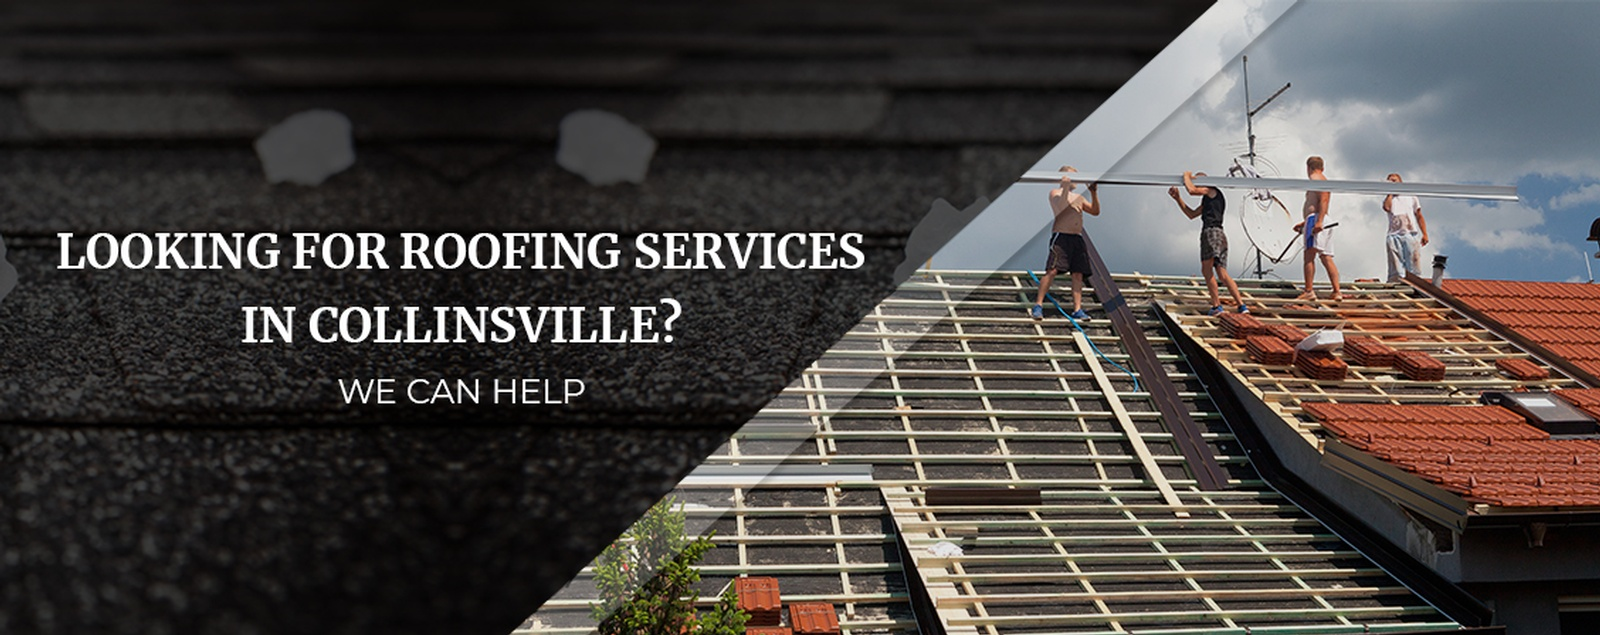 Looking For Roofing Services In Collinsville We Can Help